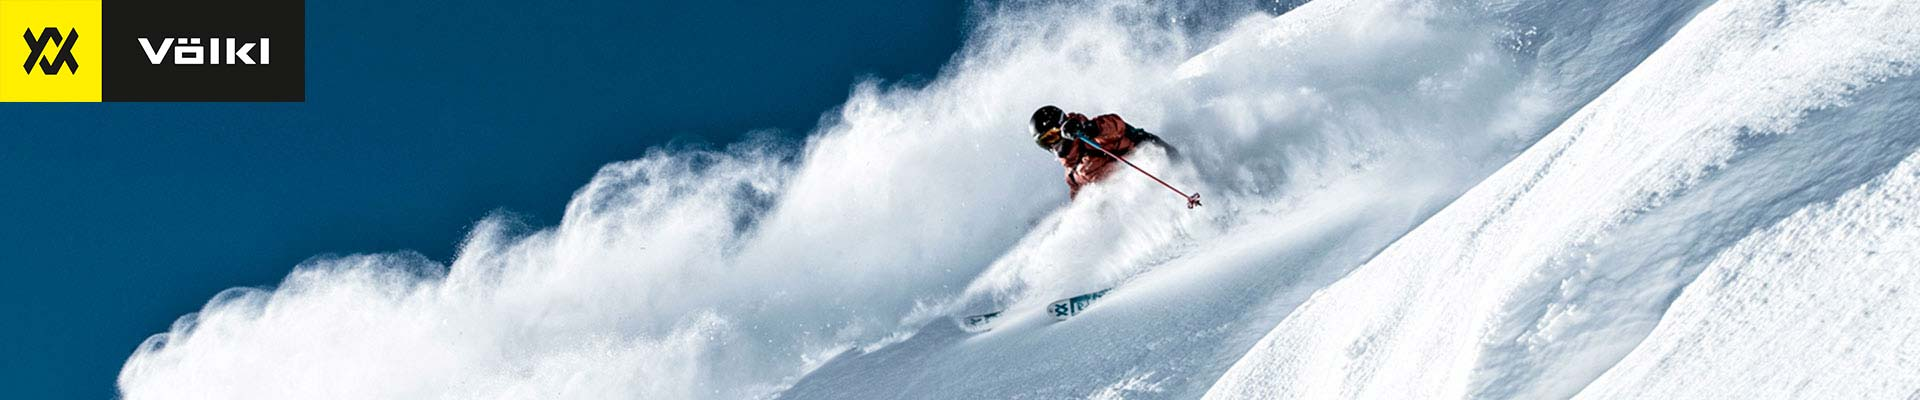 Shop Volkl Skis & Equipment at your local Source For Sports ski & snowboard store.